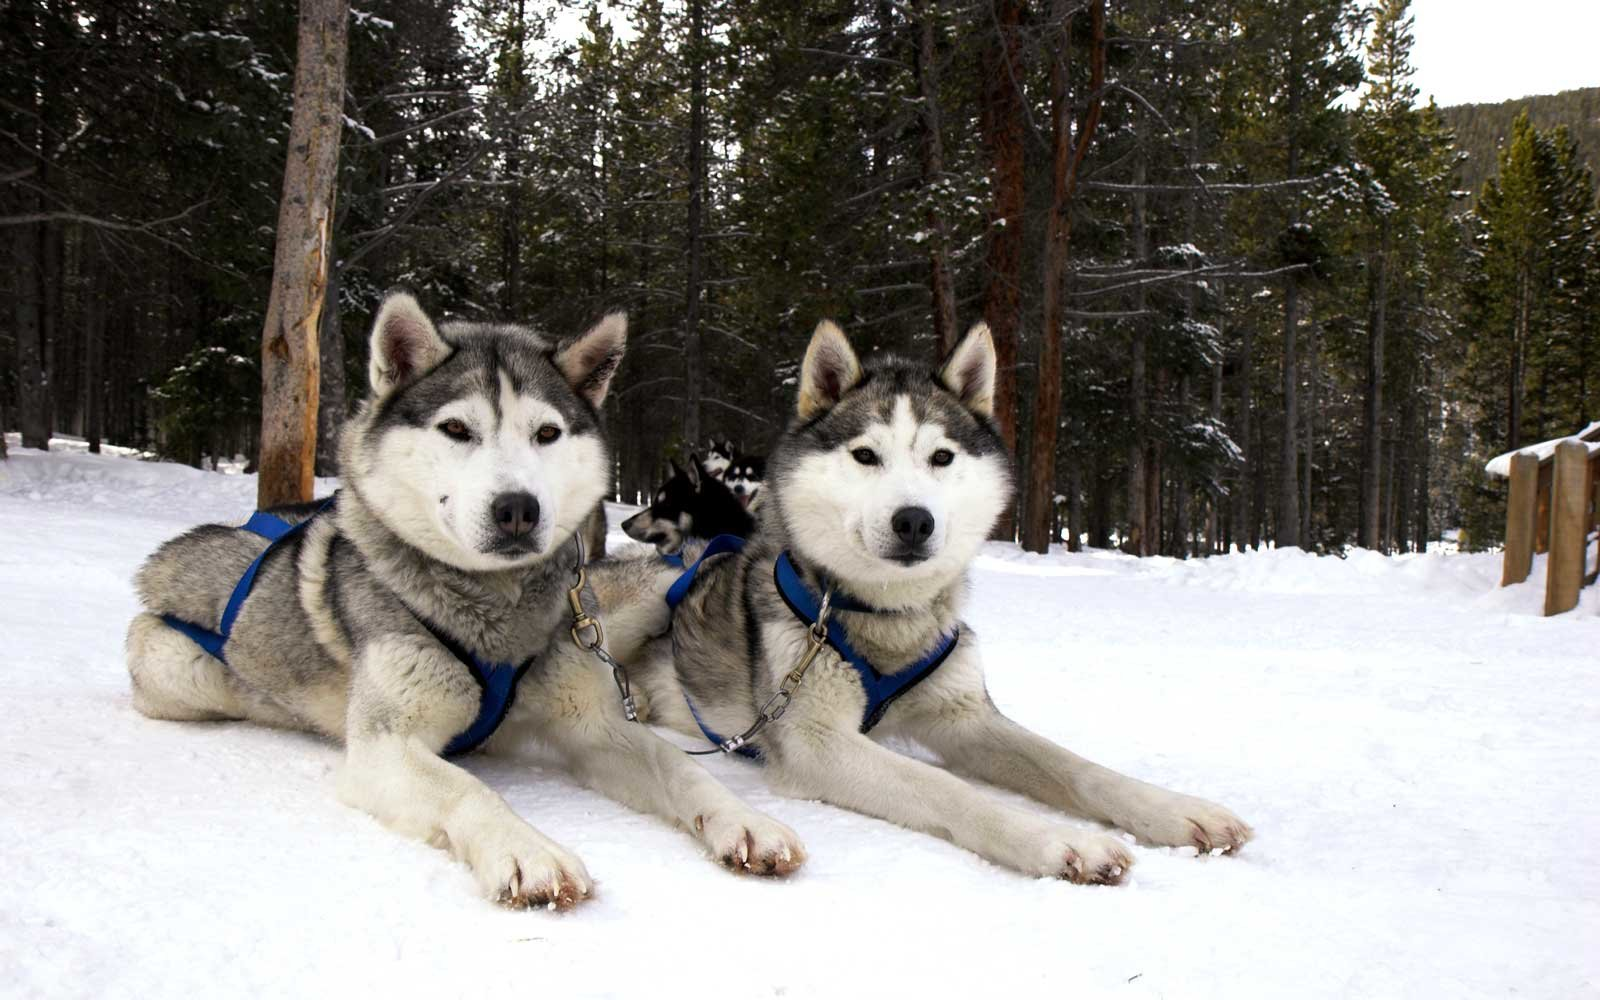 Sled dogs in Breckenridge, Colorado